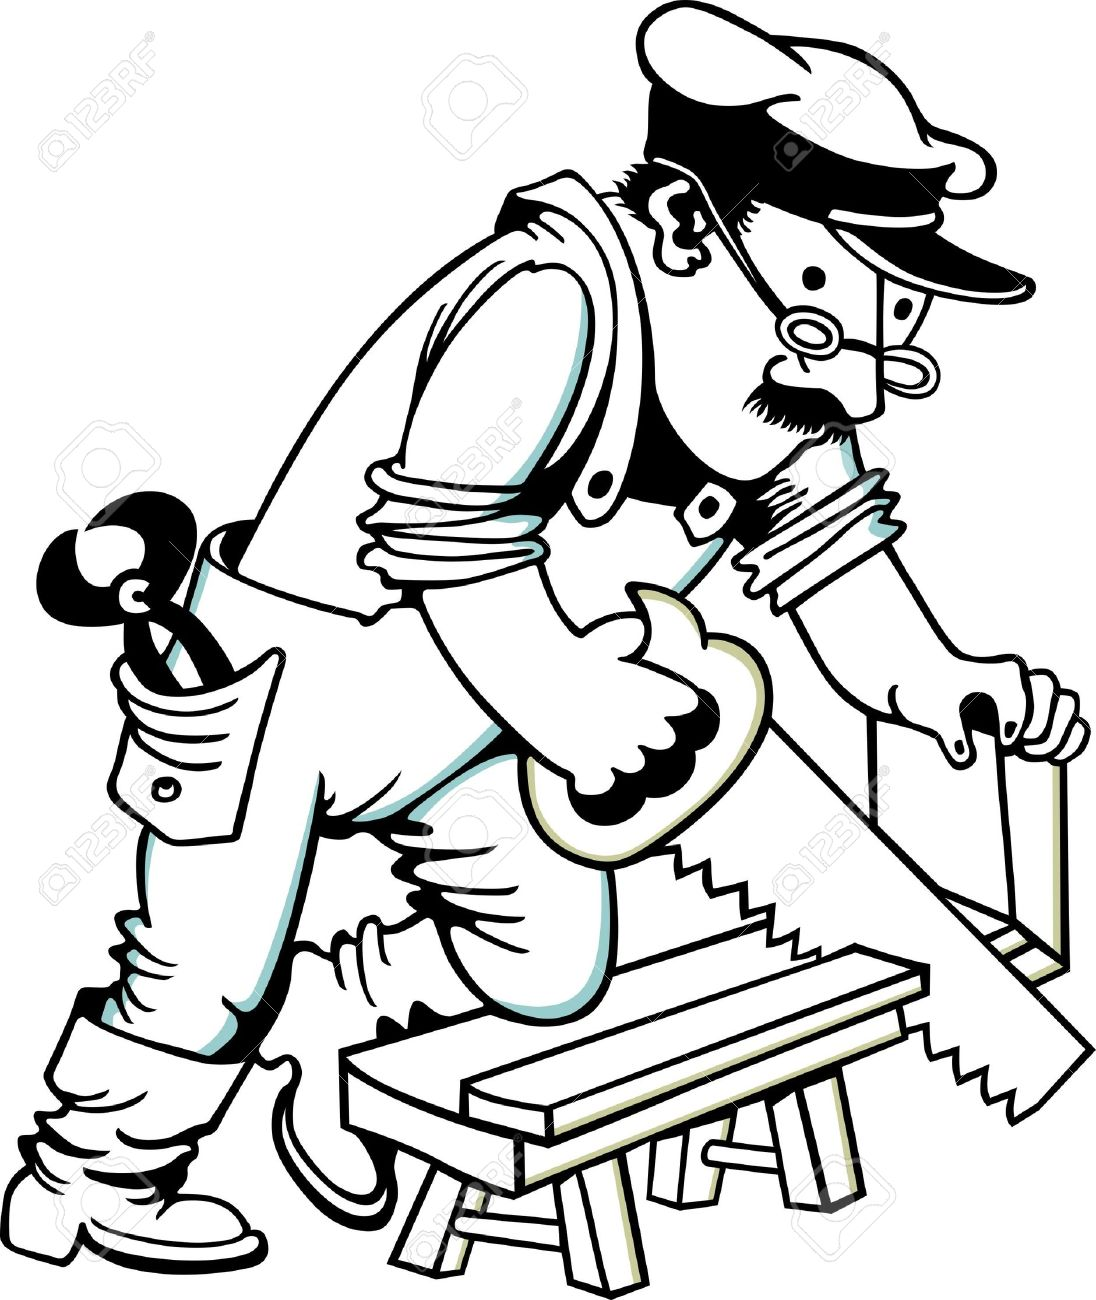 man sawing wood royalty free cliparts vectors and stock rh 123rf com carpenter clip art free carpenter clip art free downloads